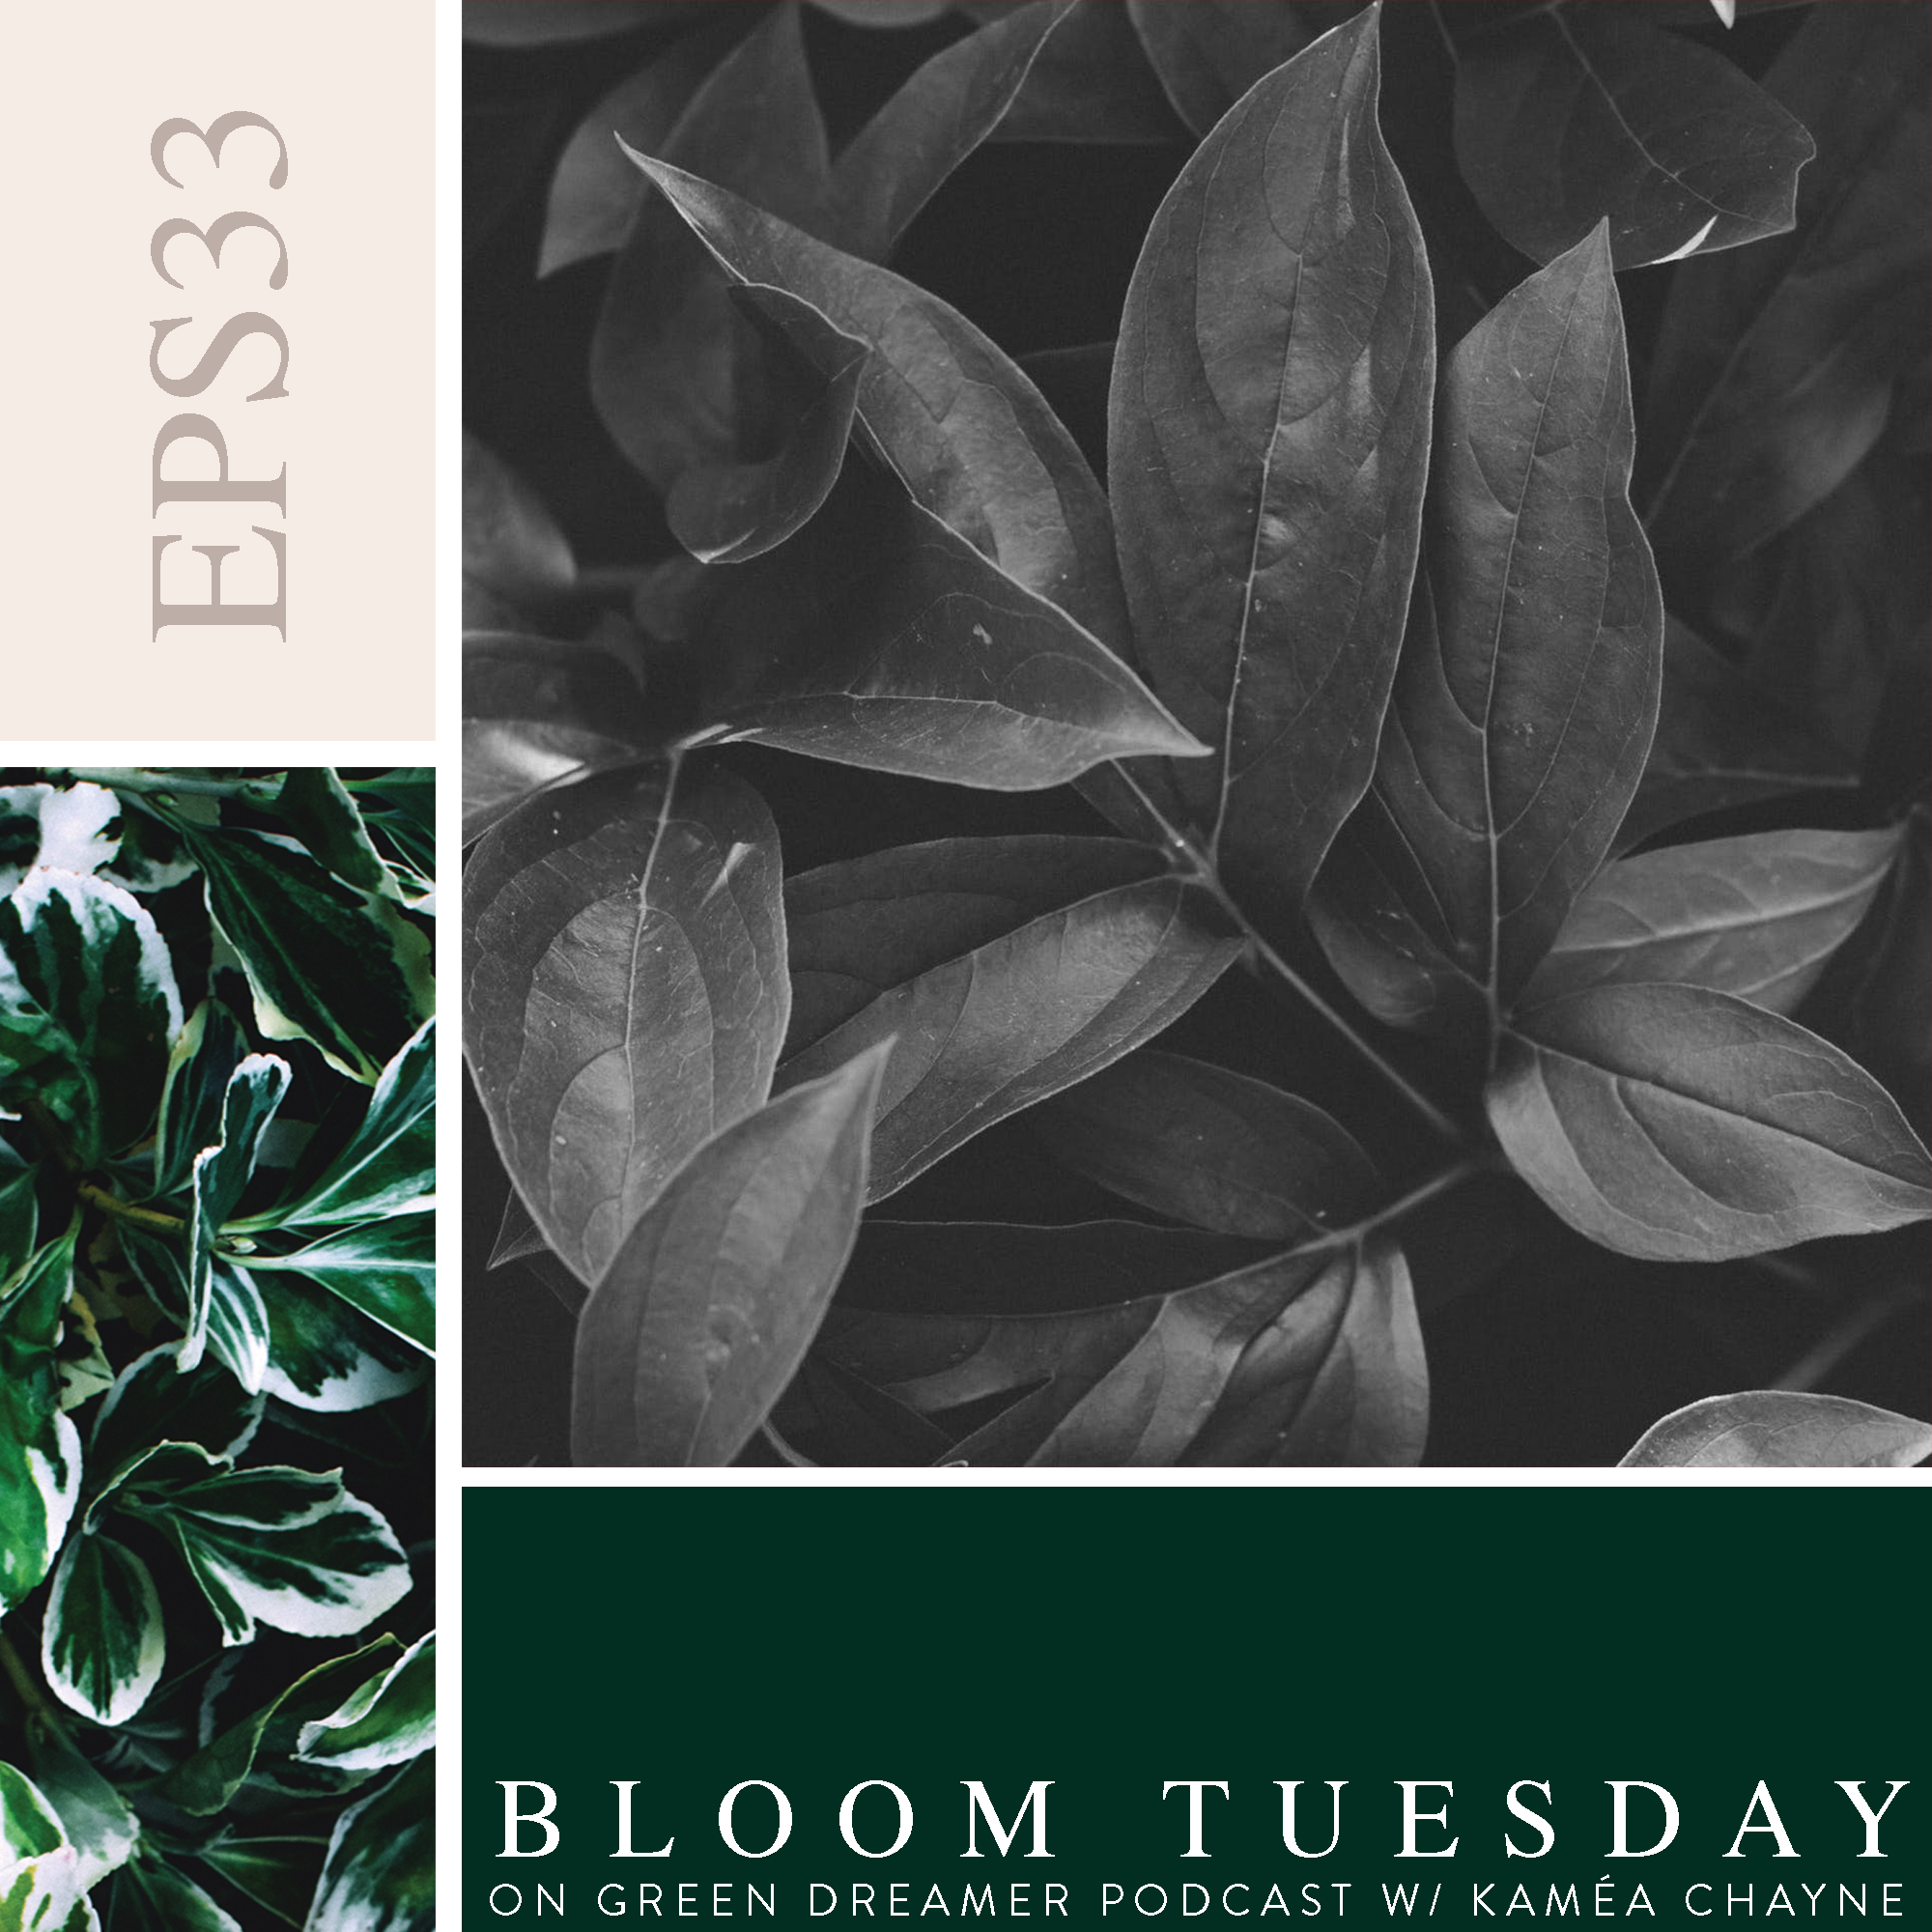 33) BLOOM TUESDAY